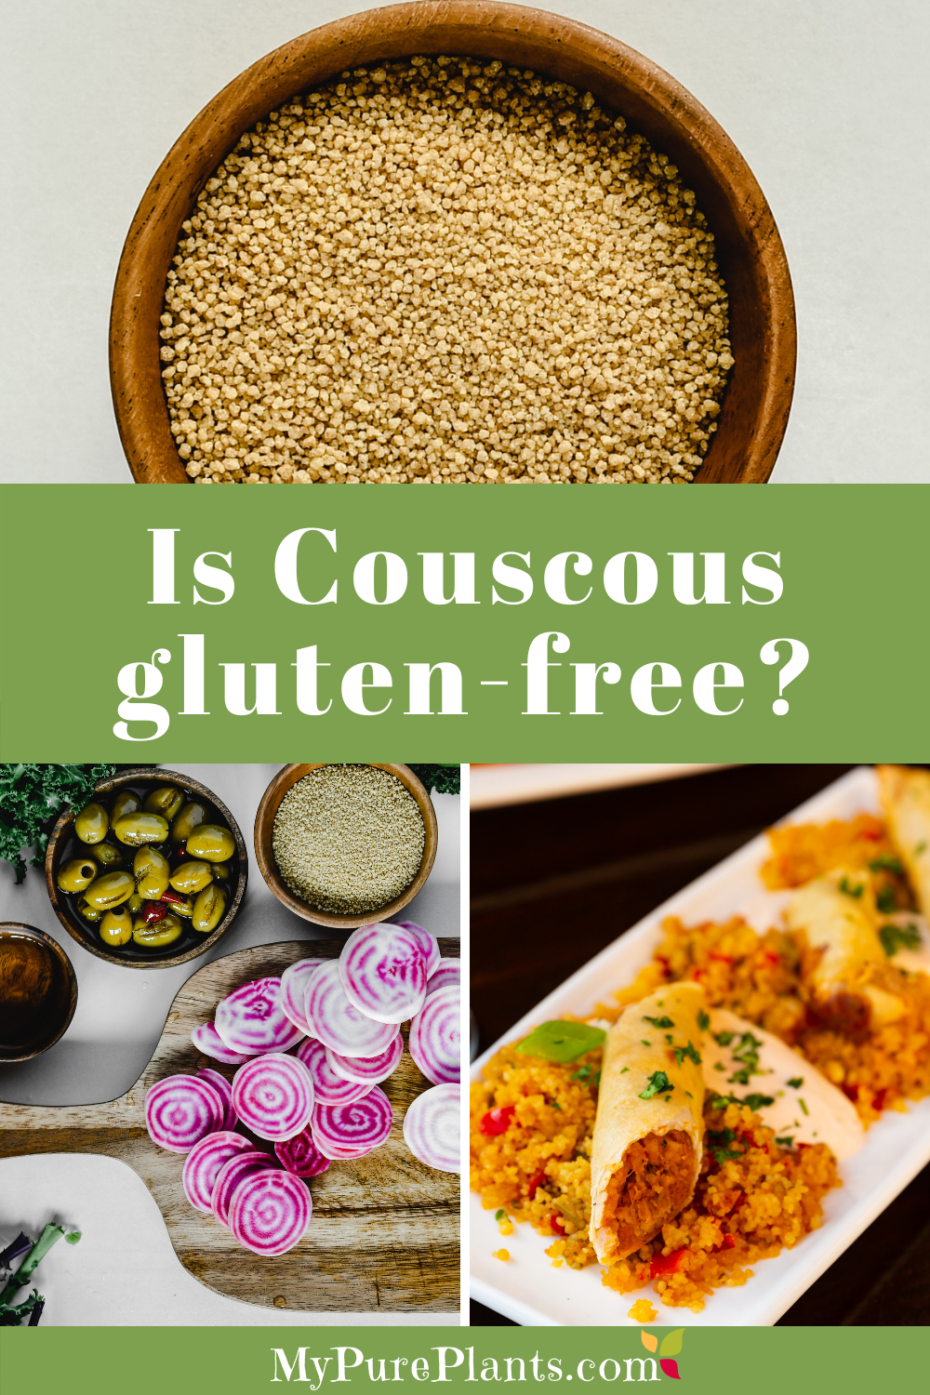 3 photo collage with a text saying is couscous gluten-free